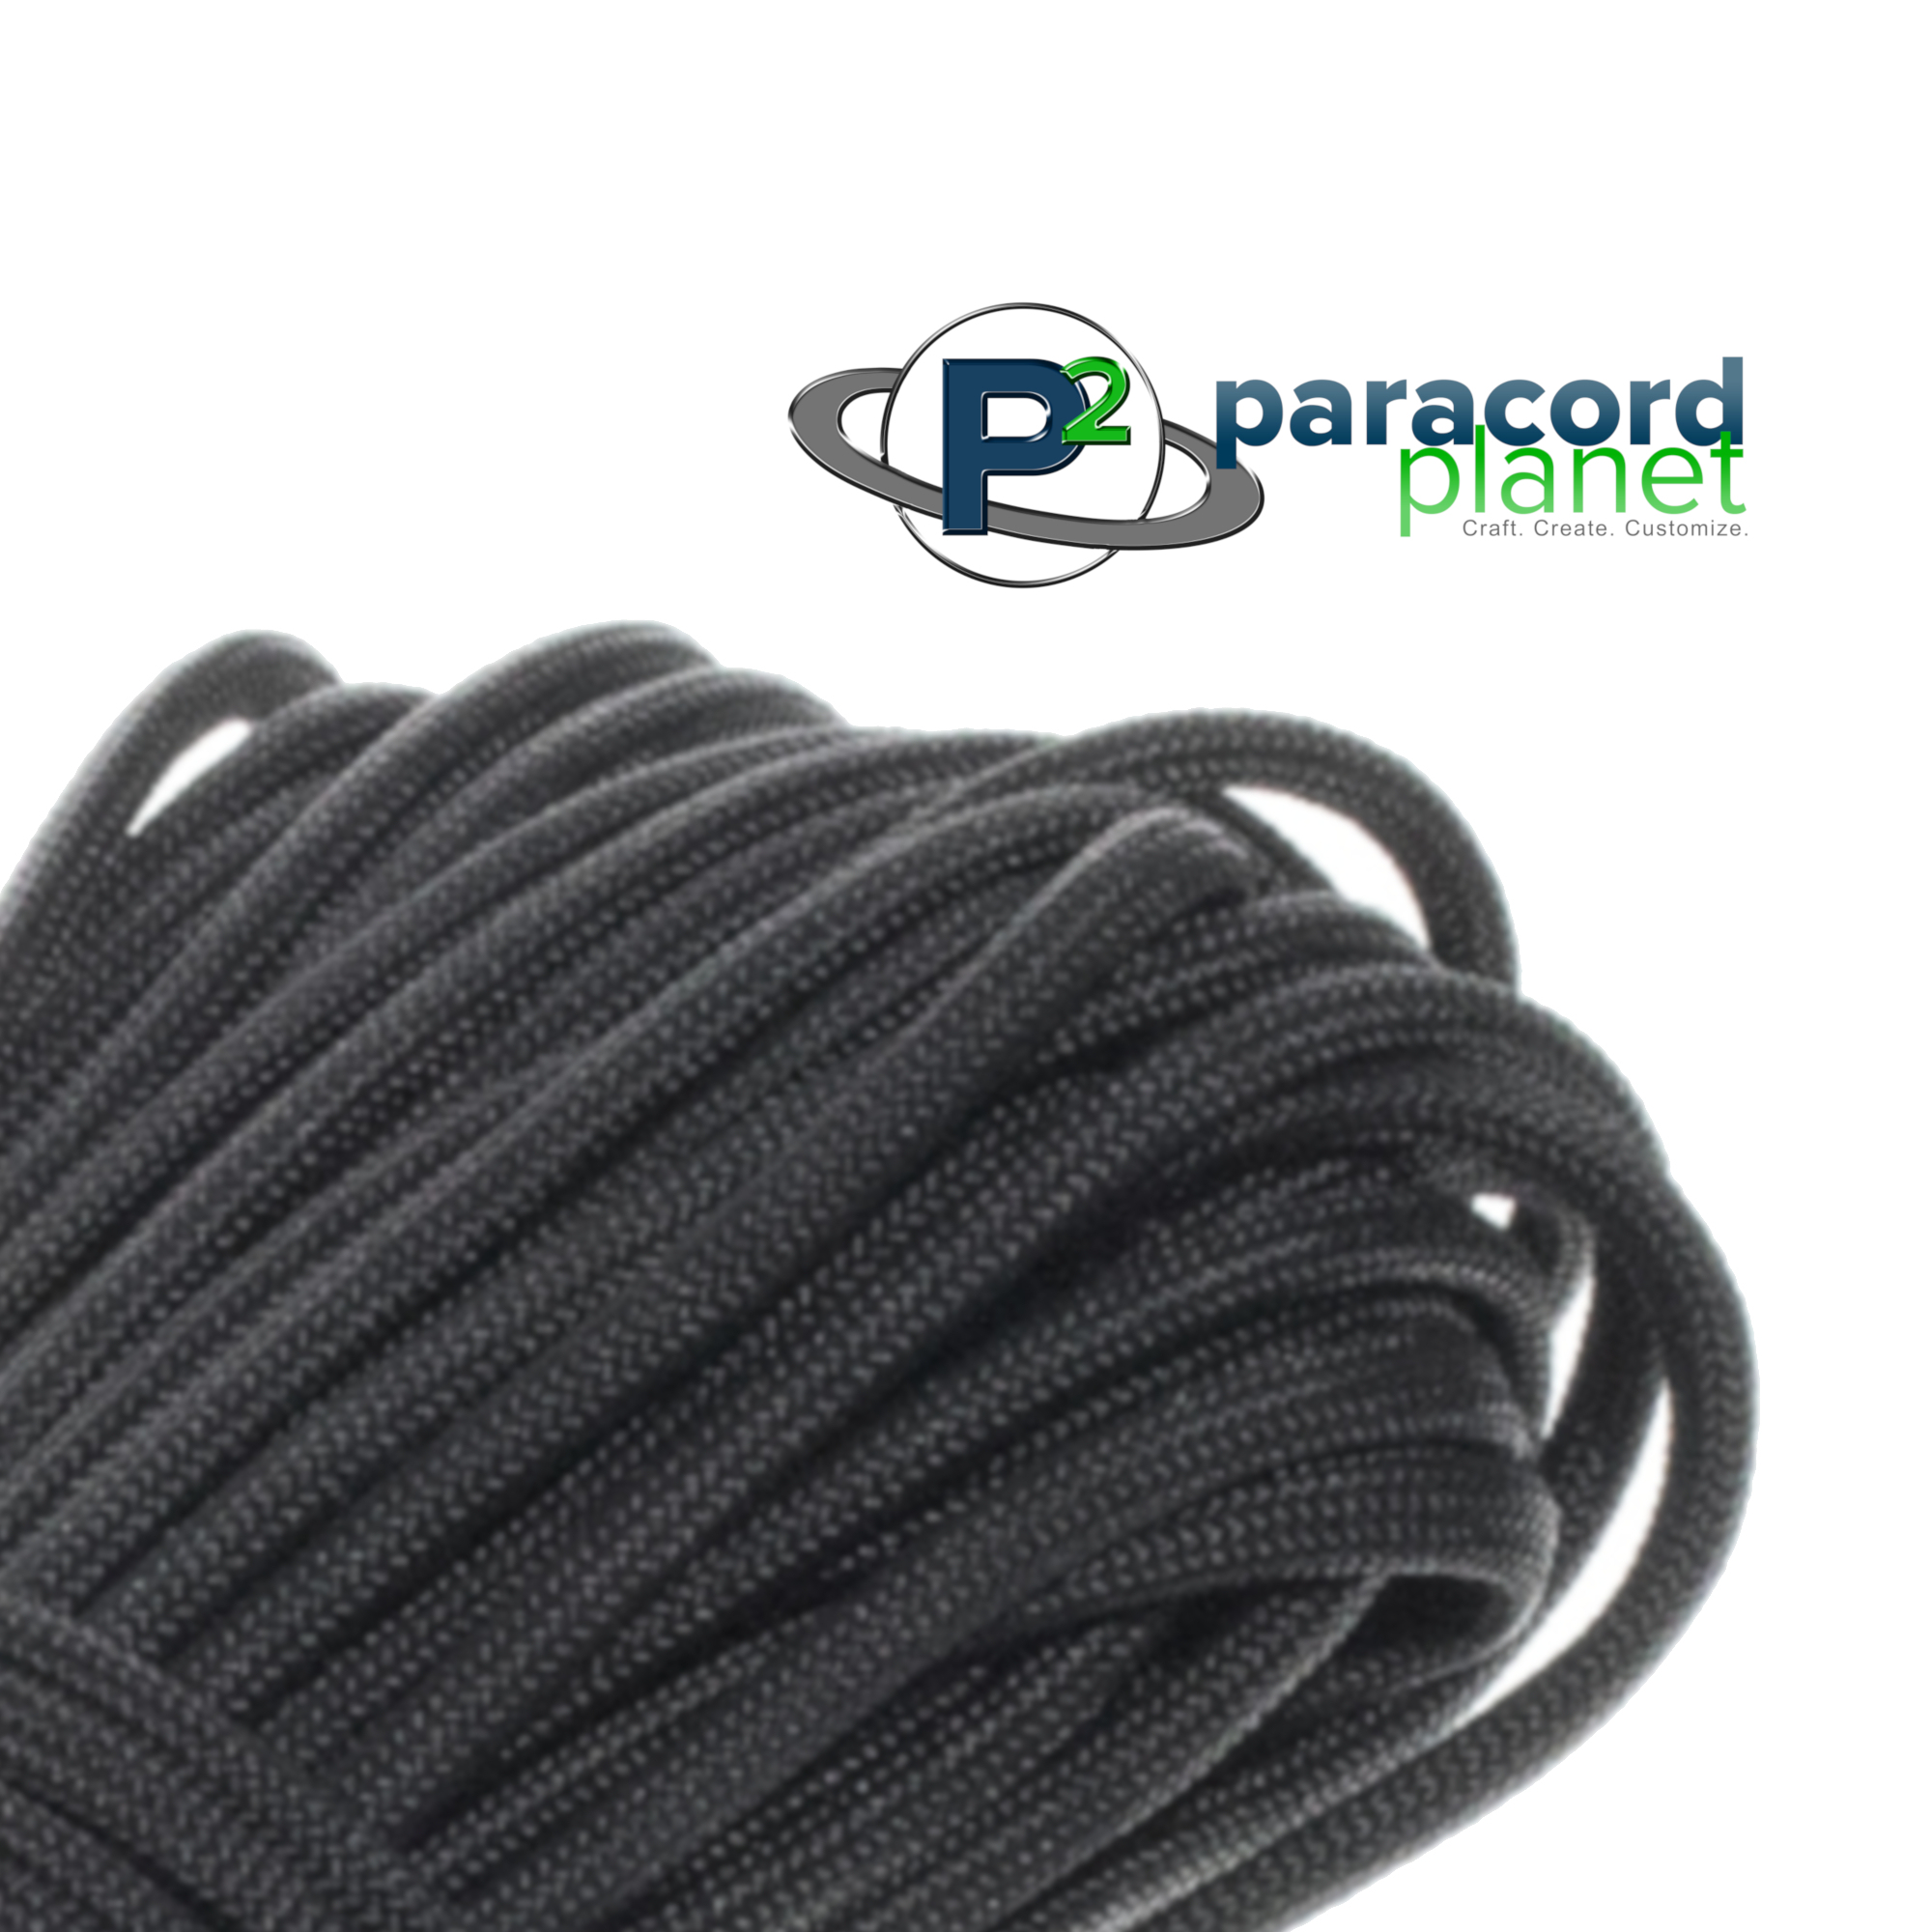 Purple Passion Camo 25 Feet PARACORD PLANET 10 20 25 50 100 Foot Hanks and 250 1000 Foot Spools of Parachute 550 Cord Type III 7 Strand Paracord